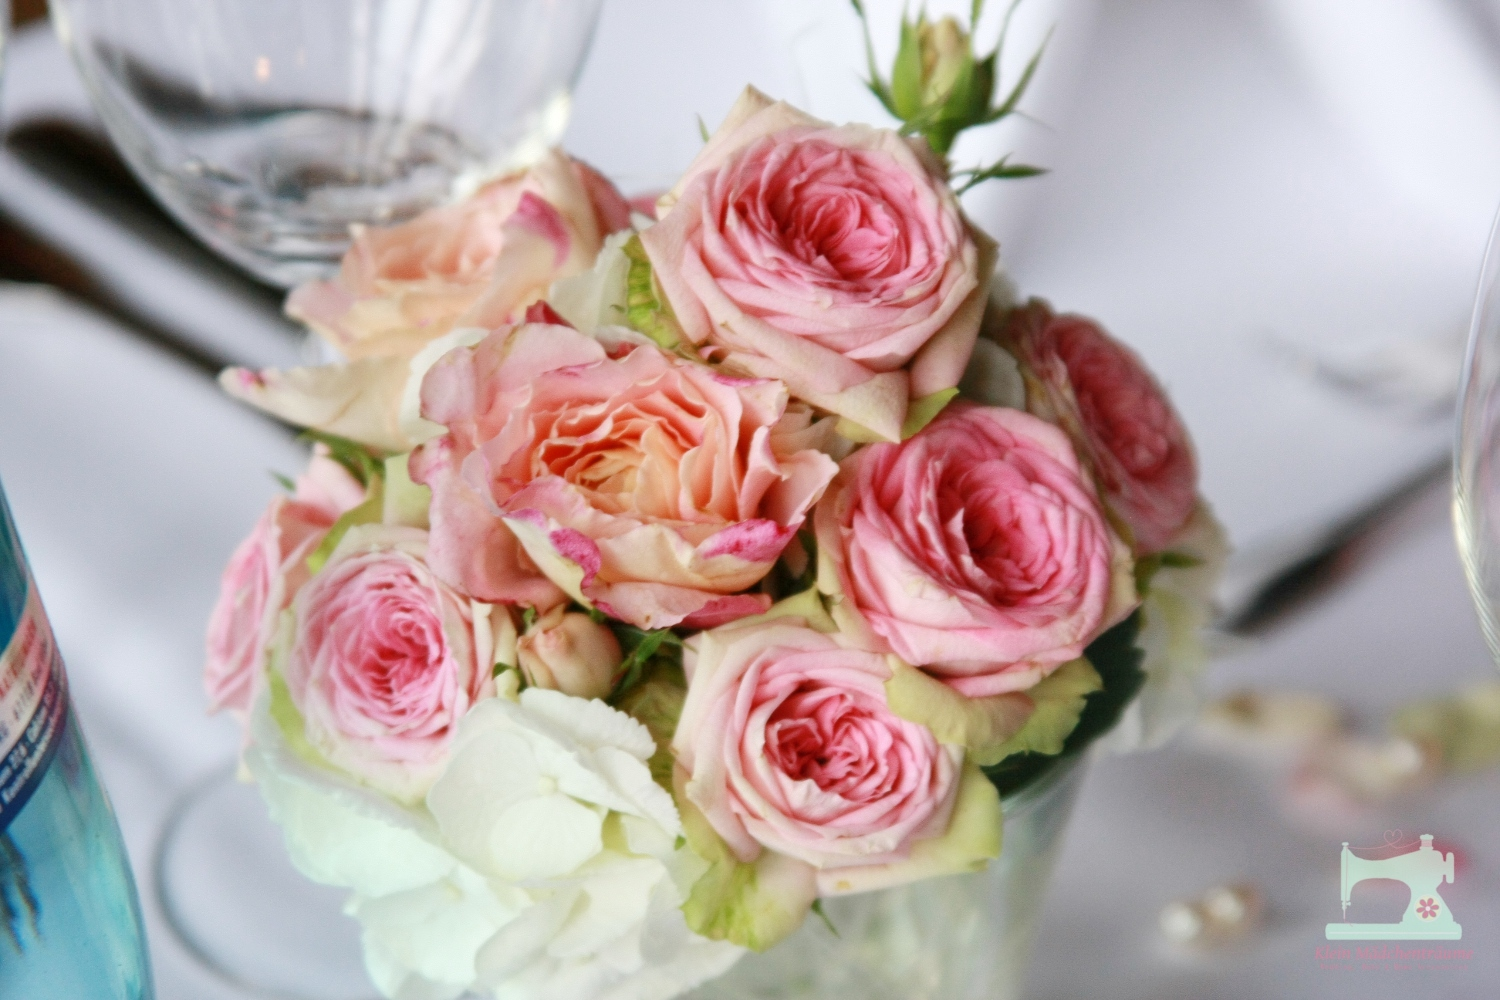 Reception, Flowers & Decor, white, pink, Centerpieces, Vintage, Flowers, Vintage Wedding Flowers & Decor, Centerpiece, Rose, Hydrangea, Inspiration board